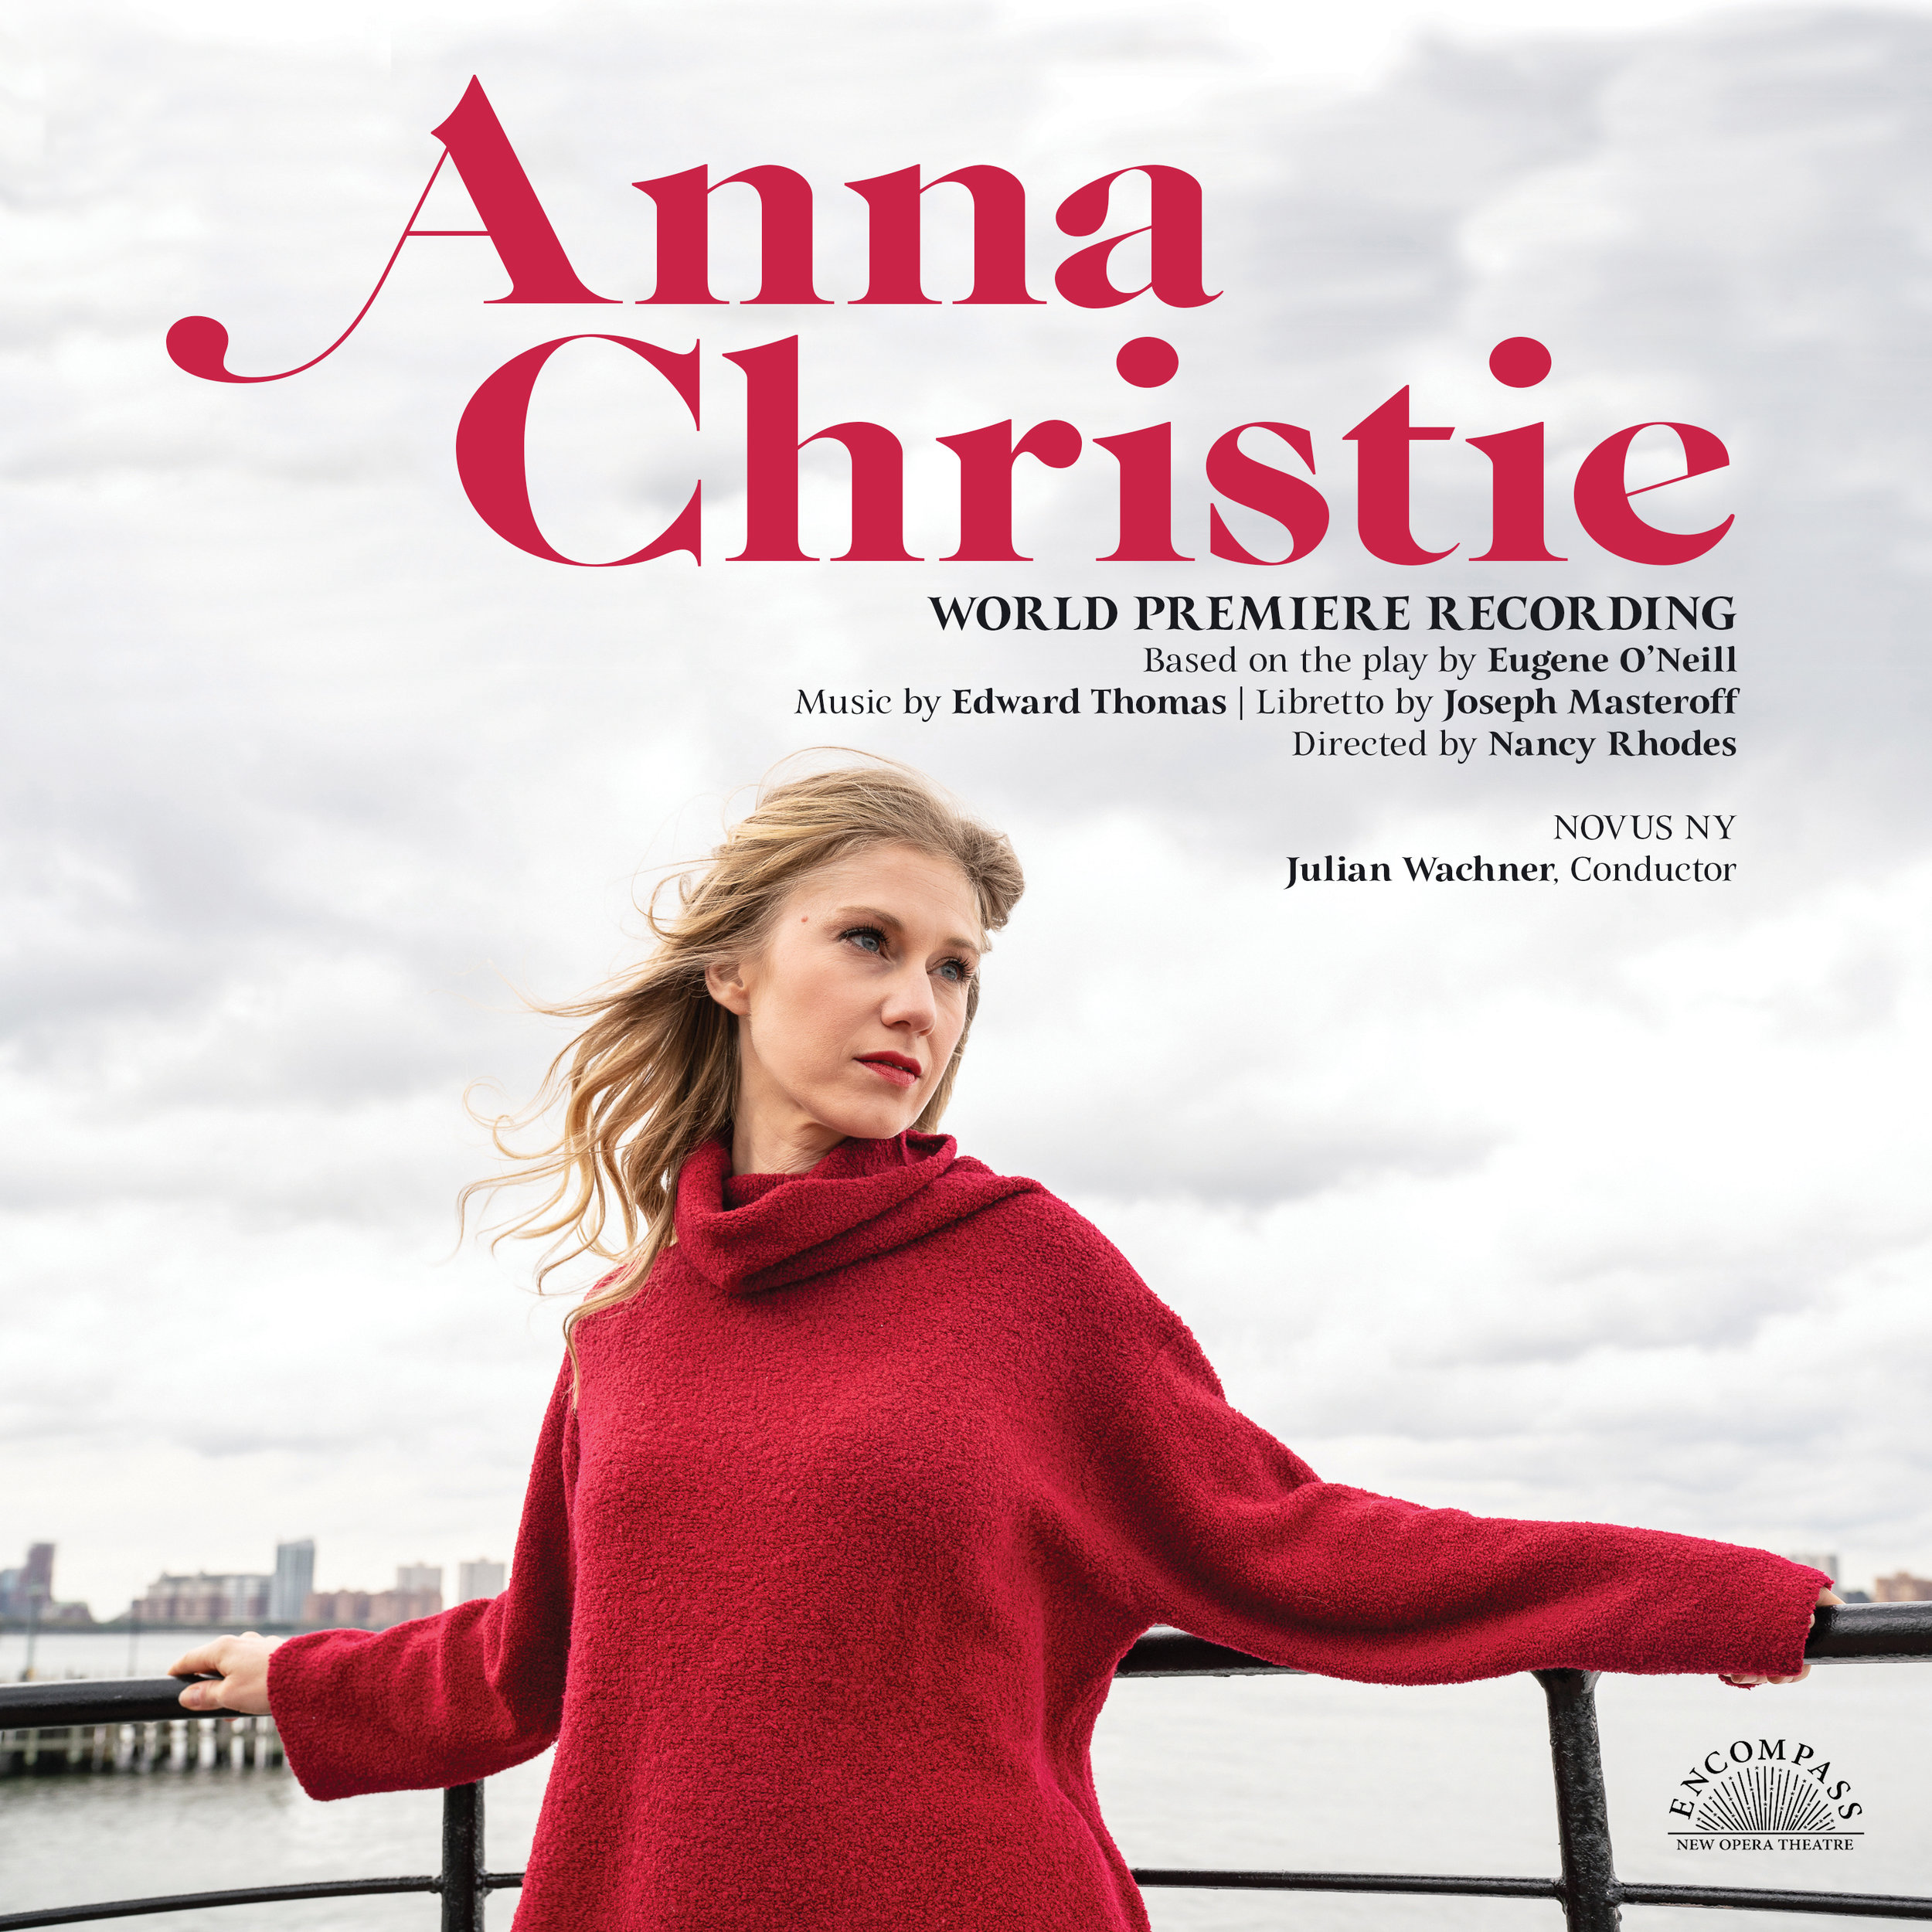 the album - From 12-time Grammy-winning producer Thomas Z. Shepard, Encompass New Opera Theatre, Trinity Church Wall Street and Broadway Records present the world premiere cast recording of Anna Christie, available now!